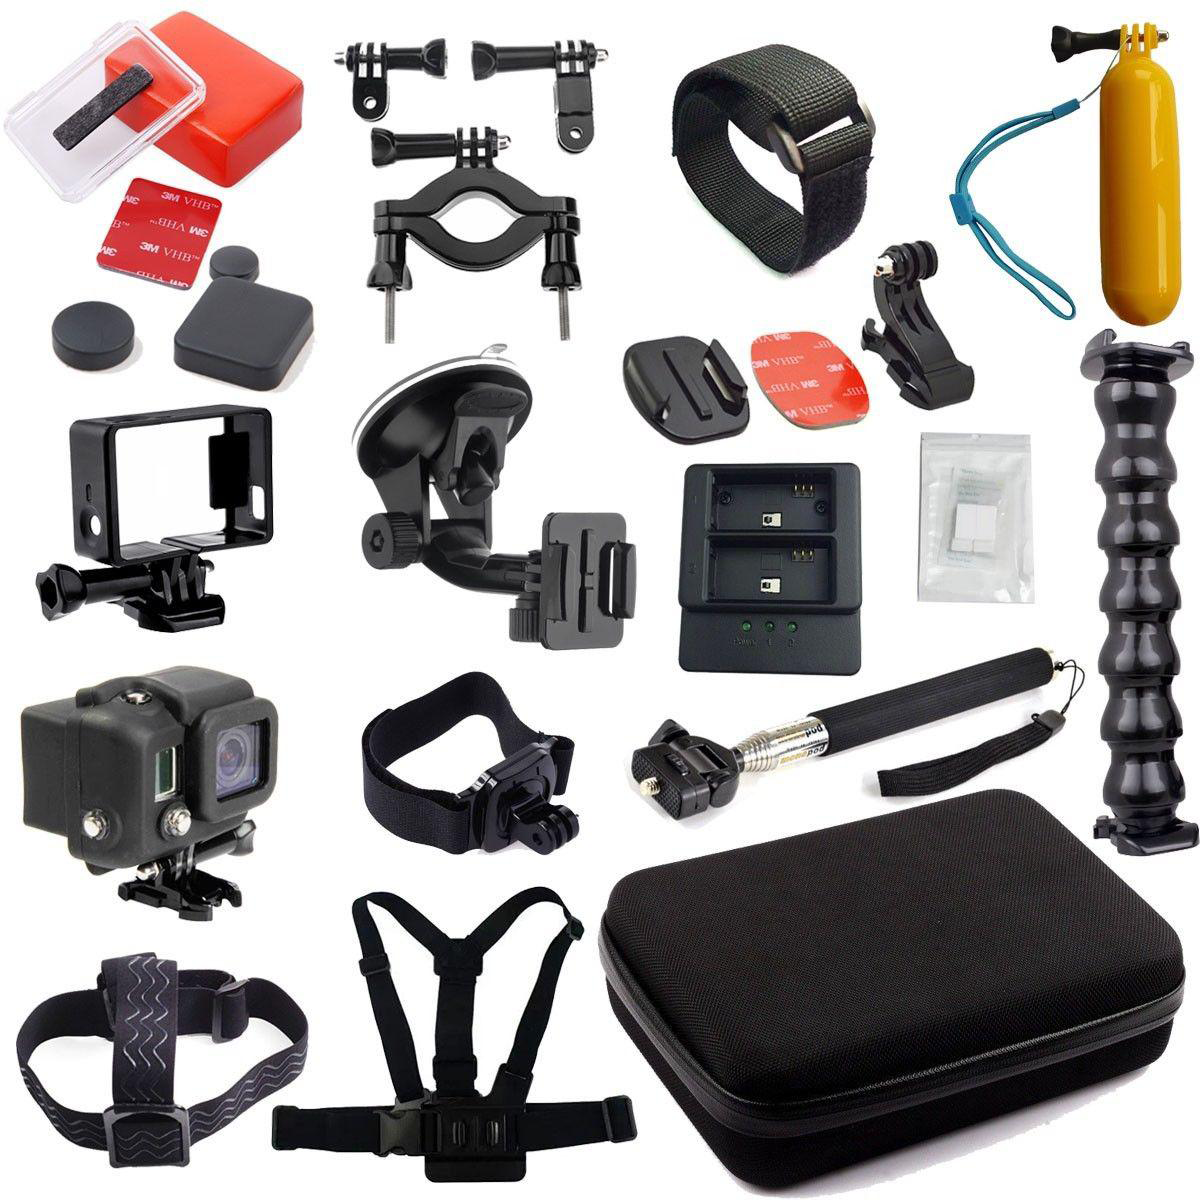 Best GoPro Accessories for 2019